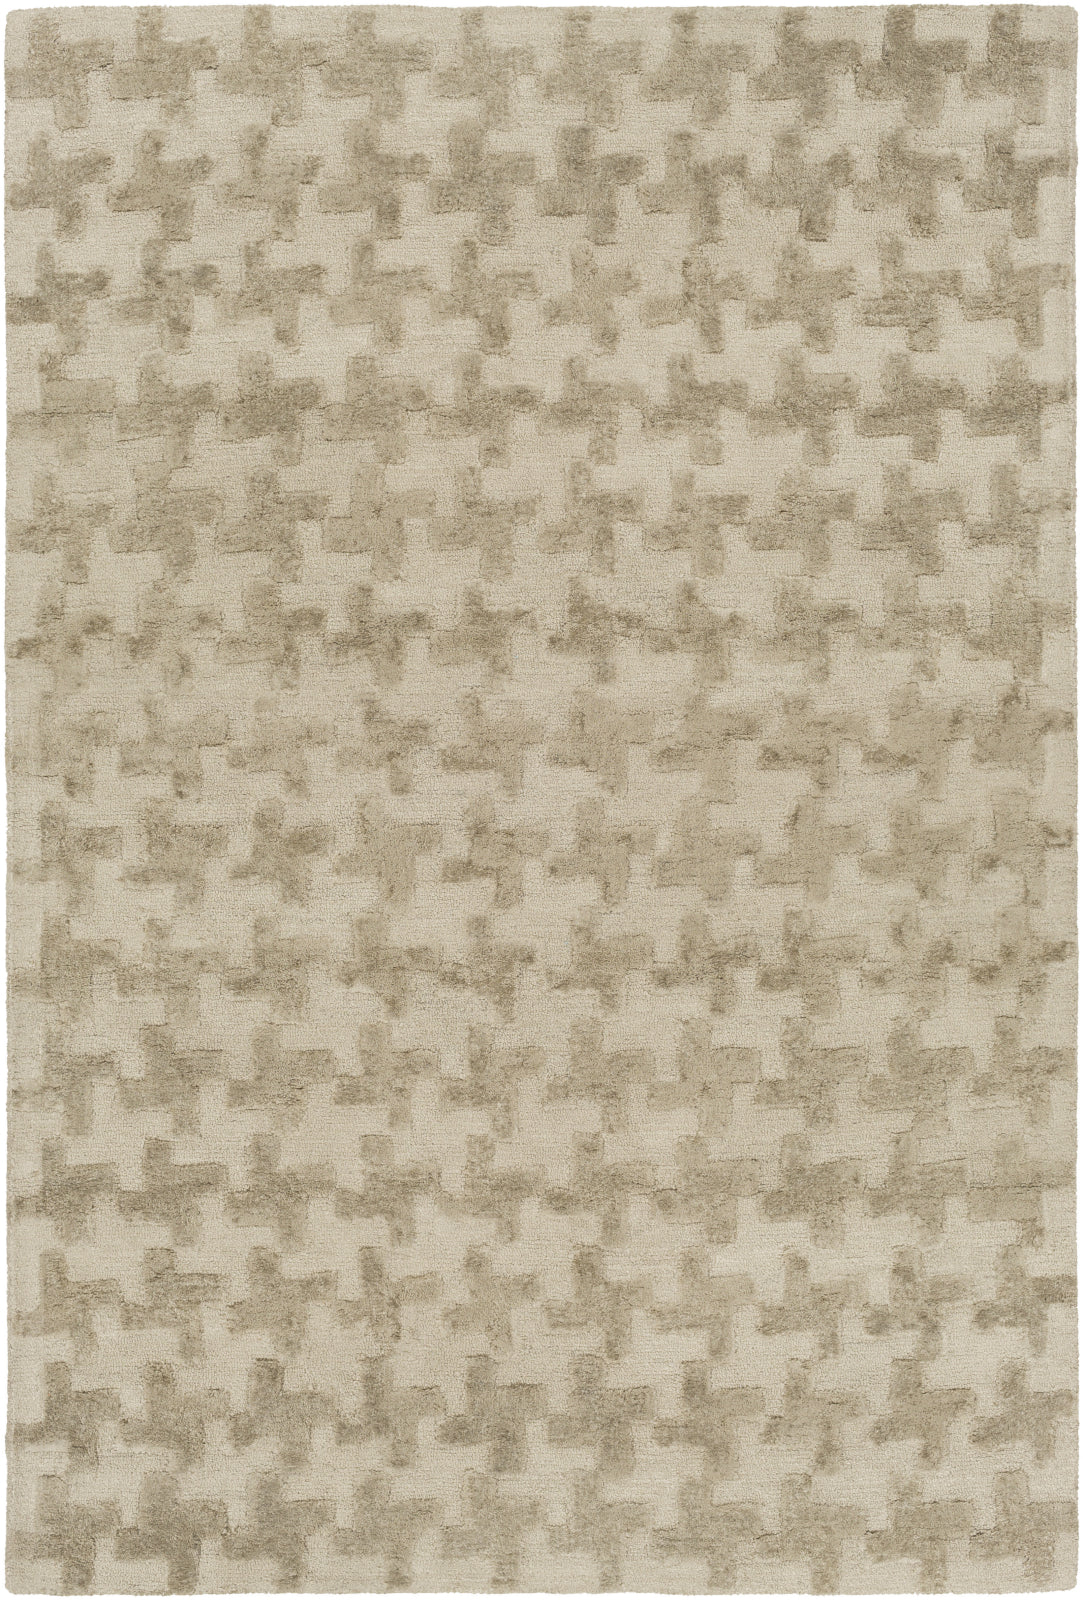 Surya Juliette JUL-9009 Area Rug main image